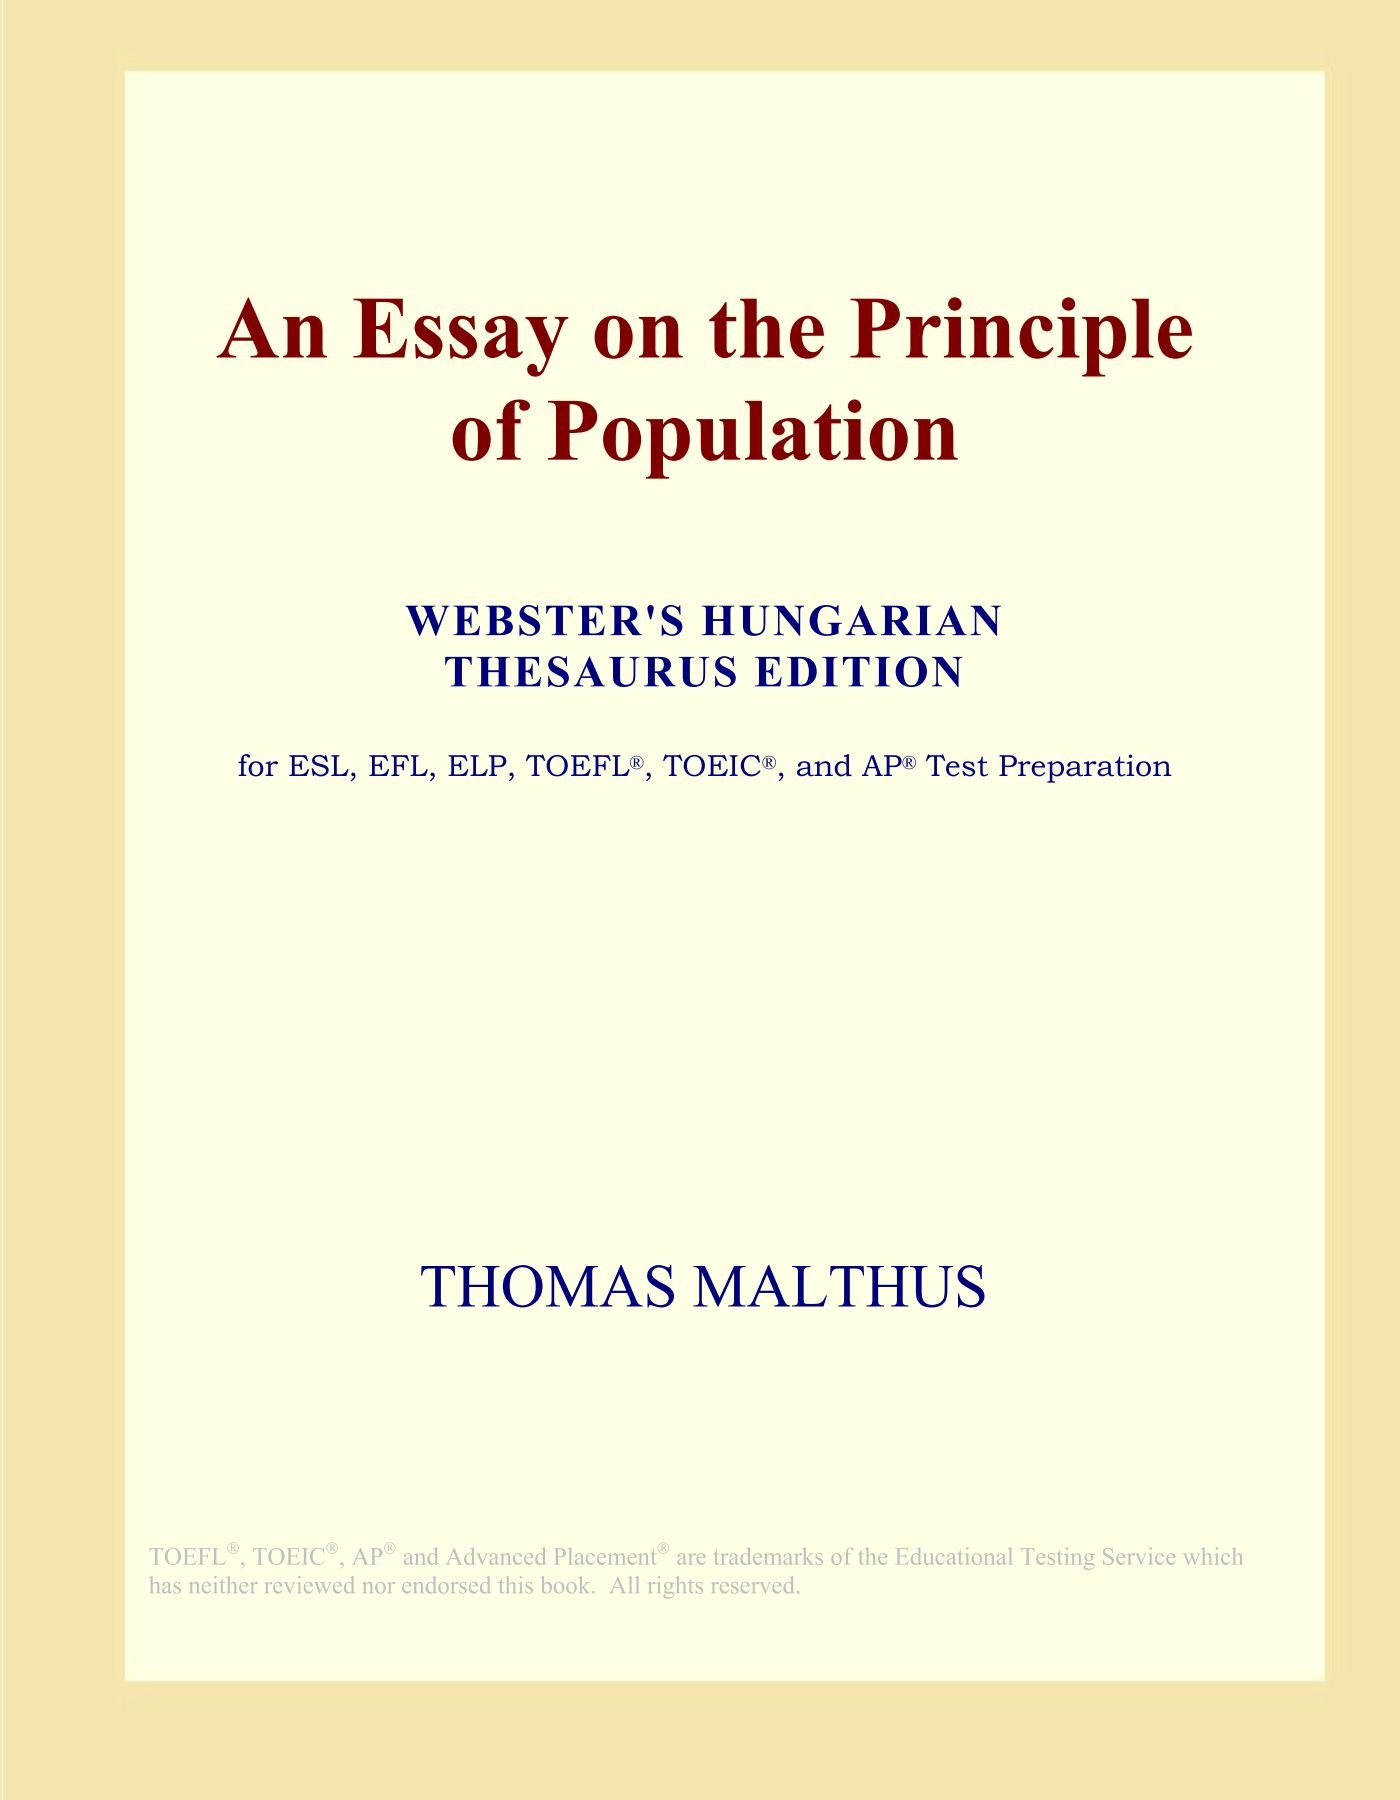 006 717hprqxqul An Essay On The Principle Of Population Fascinating By Thomas Malthus Pdf In Concluded Which Following Full